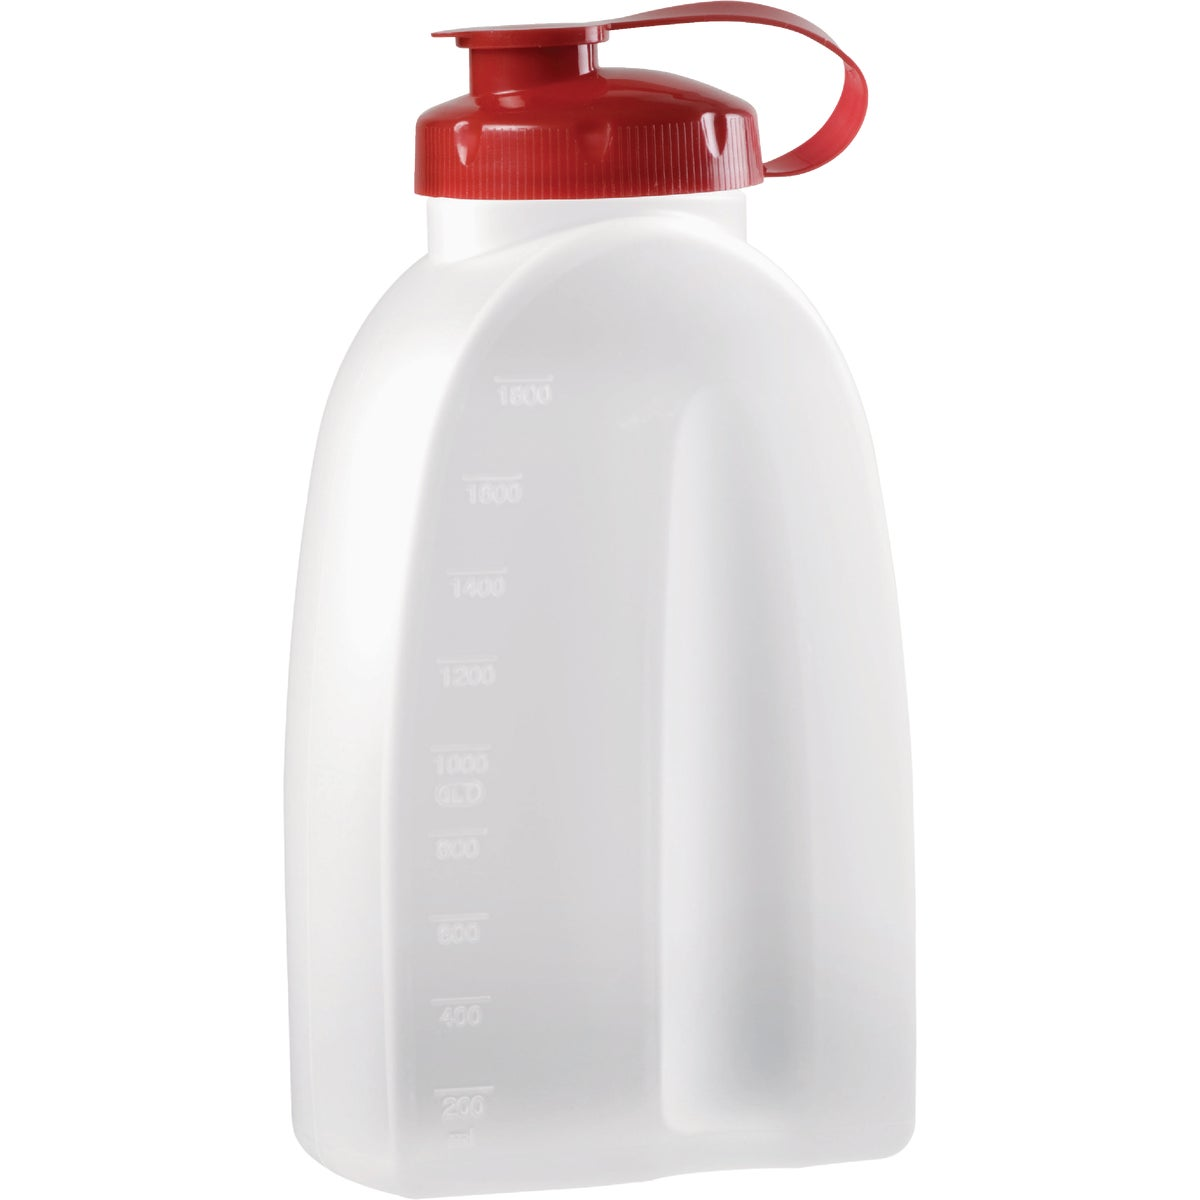 1QT BEVERAGE STRG BOTTLE